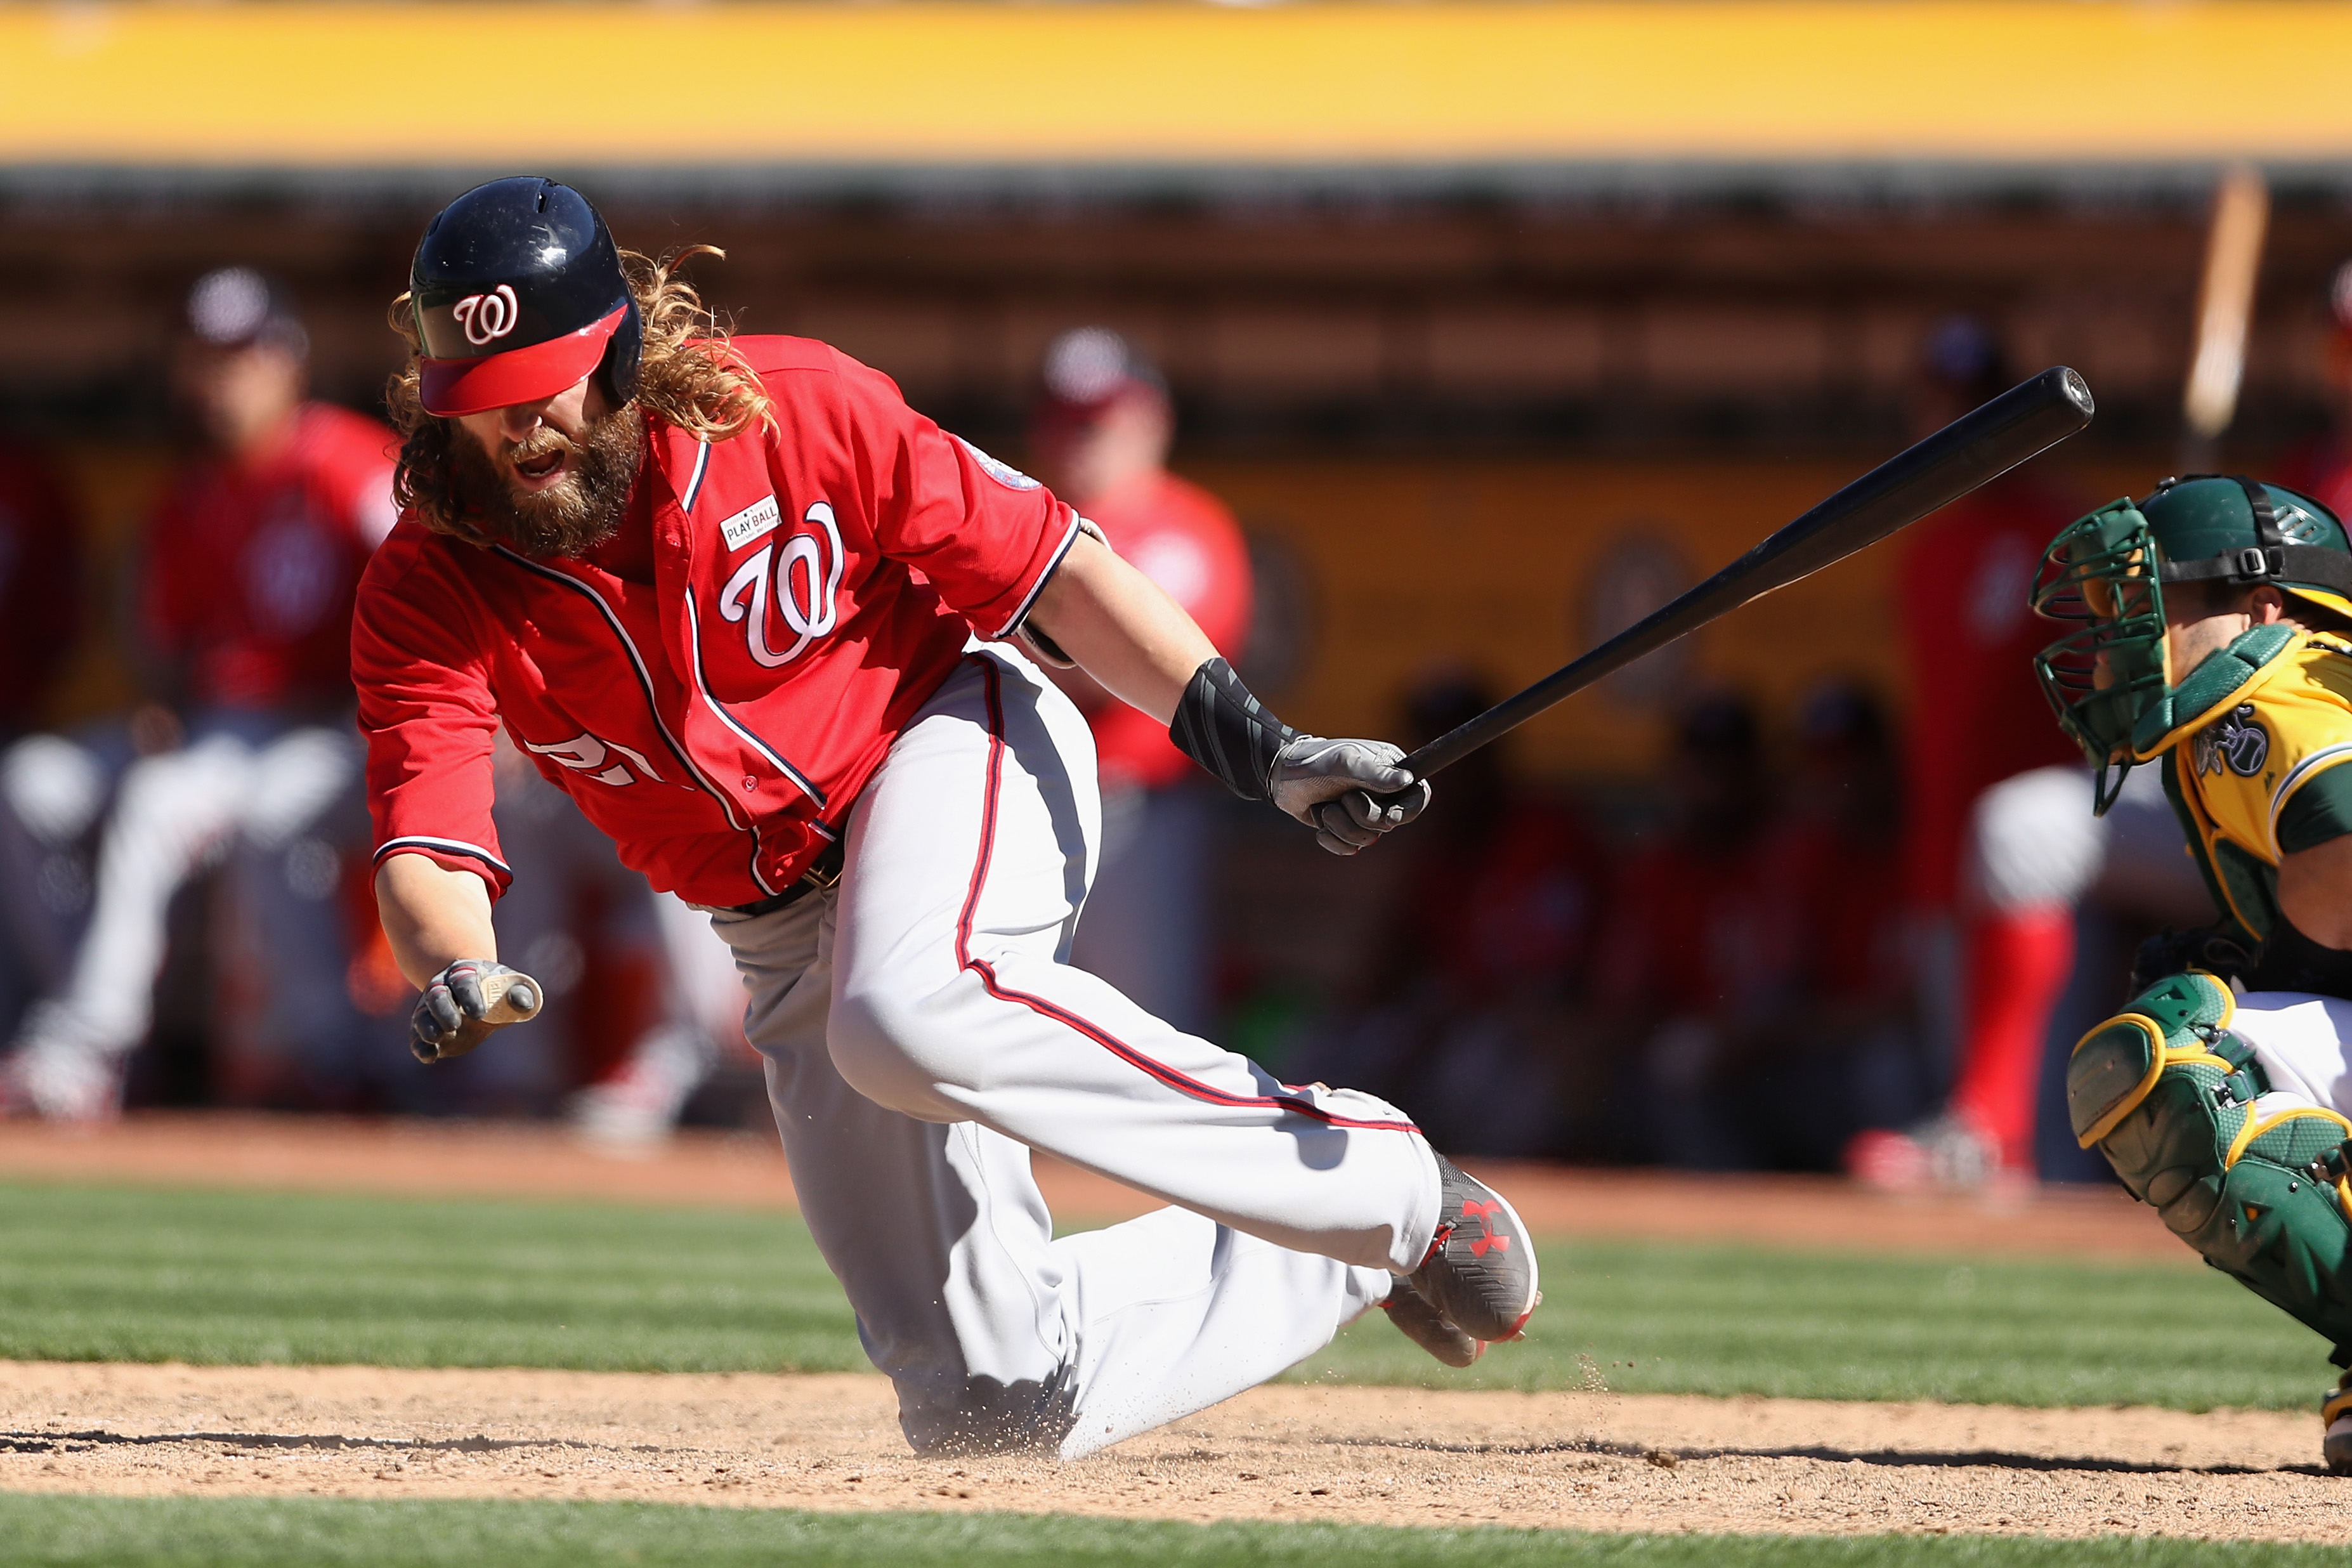 693940230-washington-nationals-v-oakland-athletics.jpg